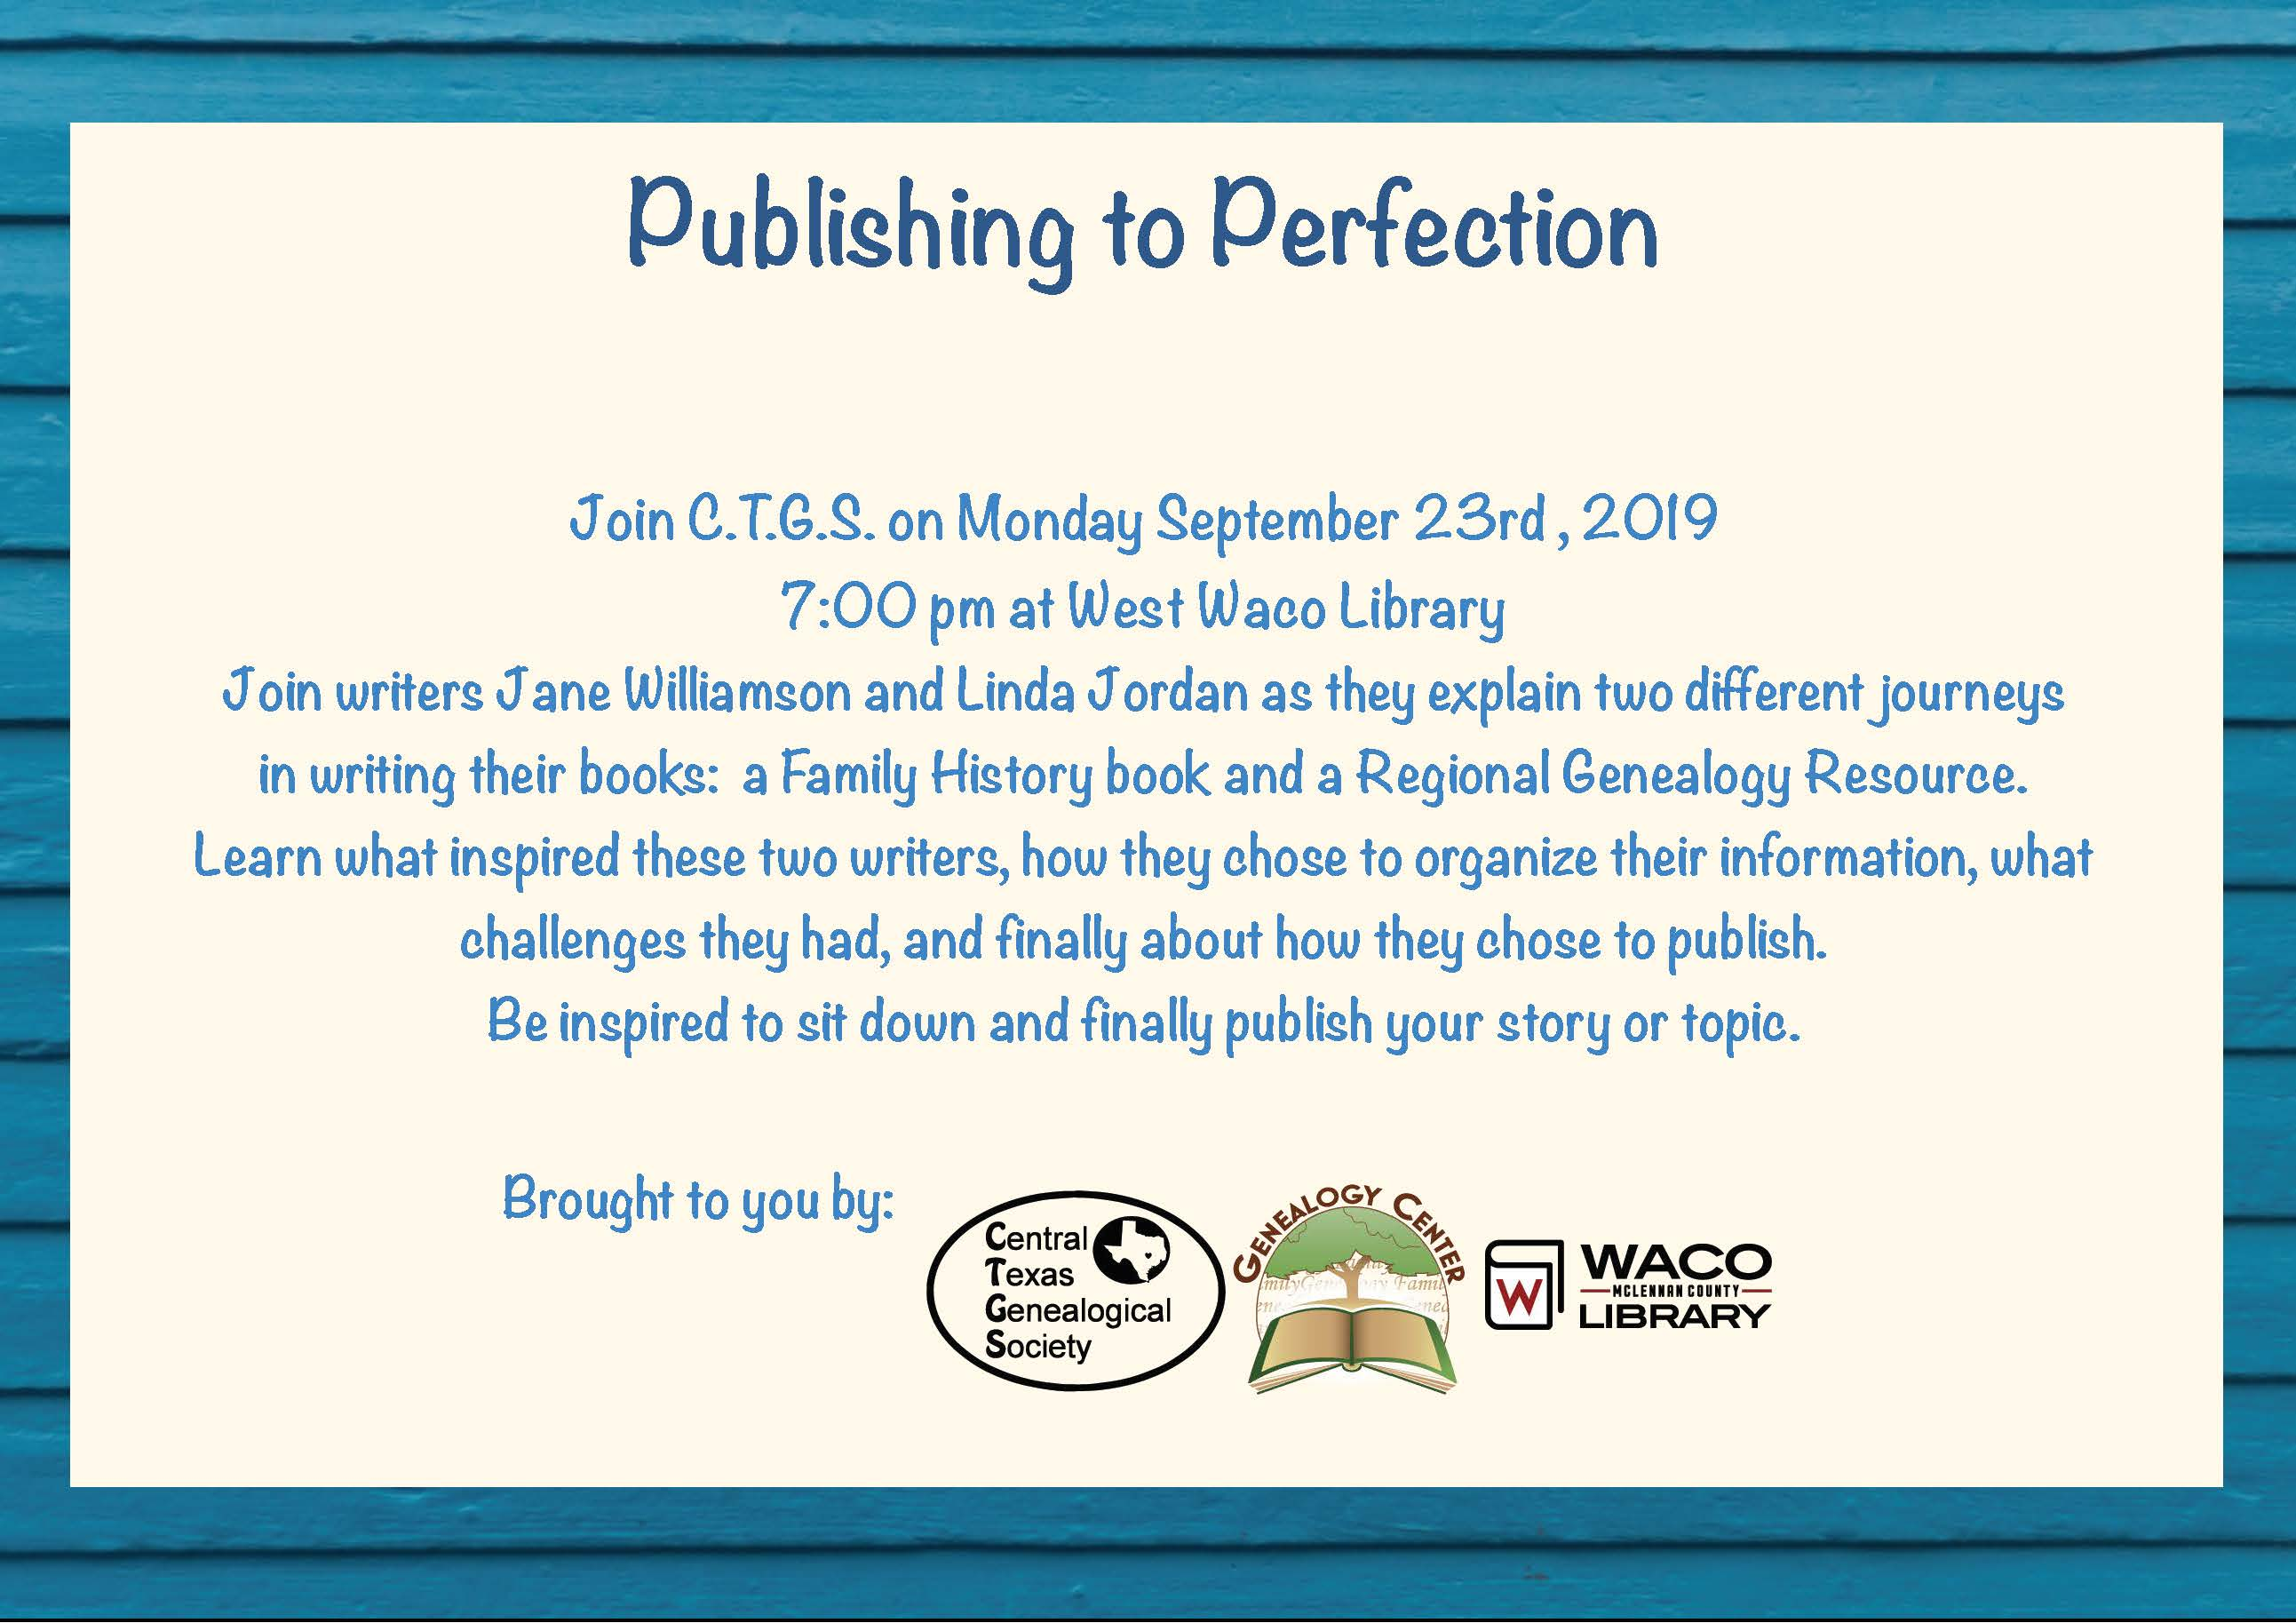 Publishing to Perfection